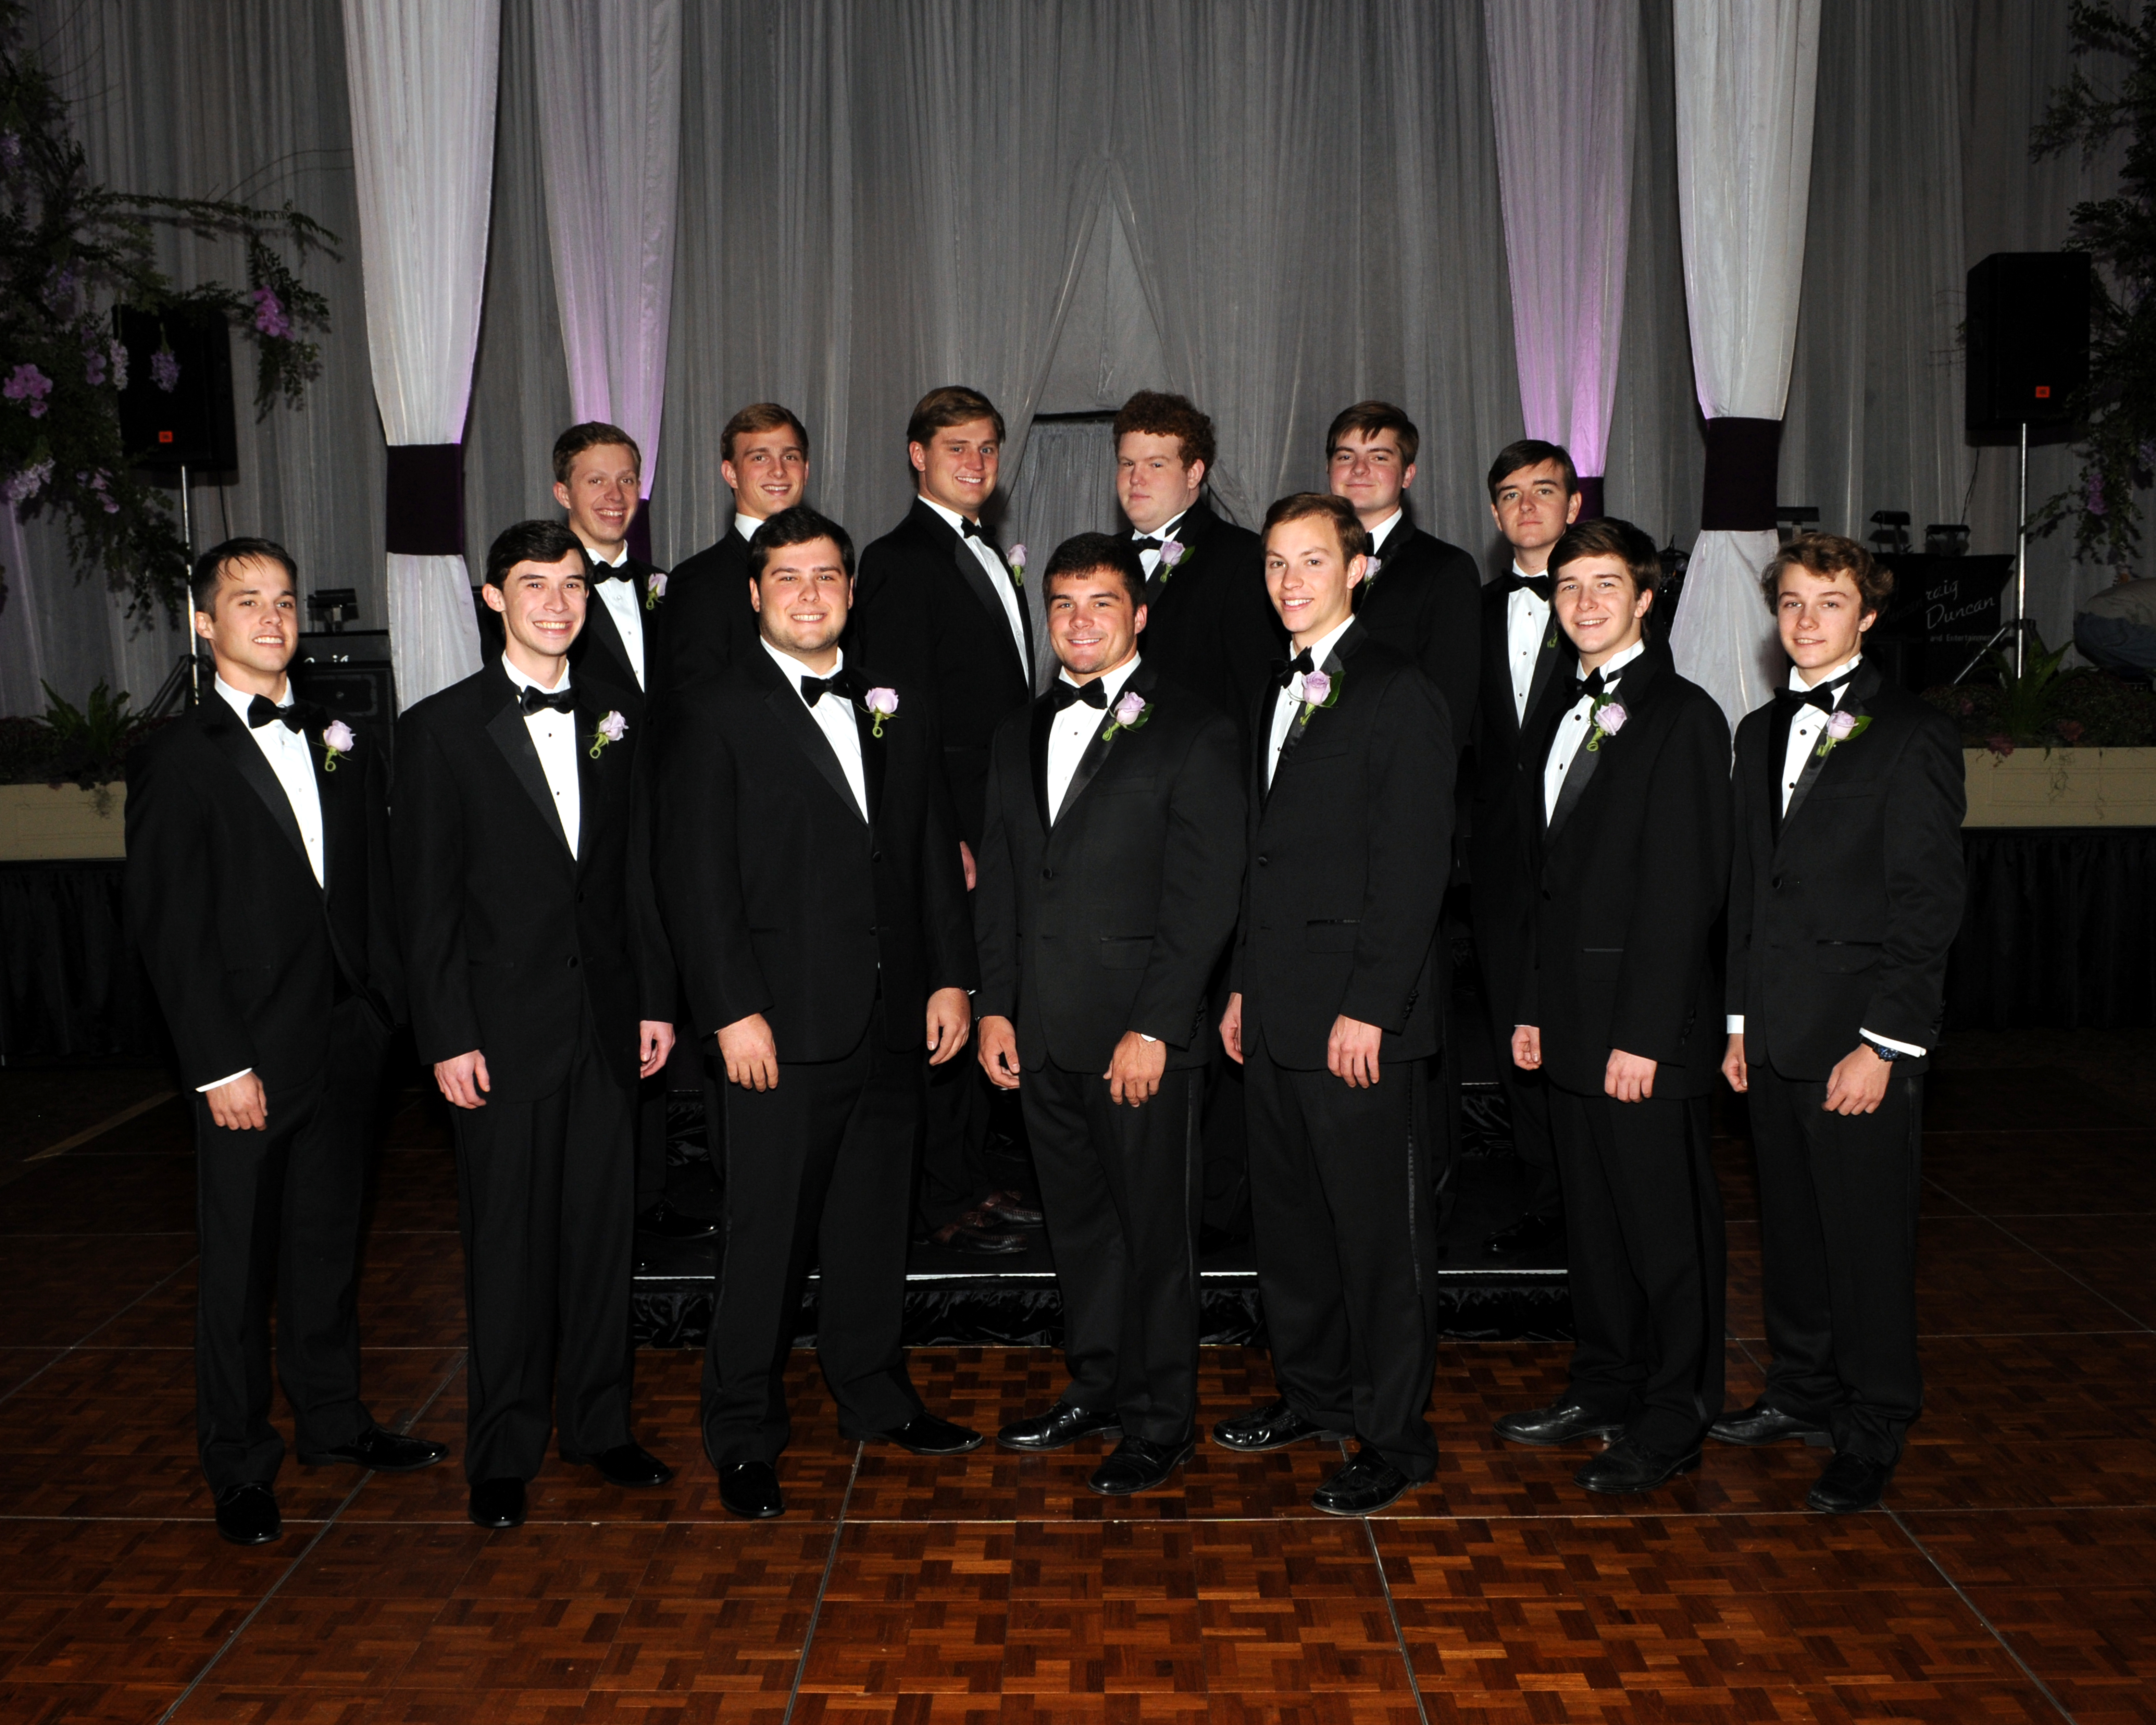 Front Row (left to right): Seth Couch, Ryan Trimble, Justin Teets, Dane Block, John Scoggins, Shelby Christian, William Christian | Back Row (left to right): Jacob Bourland, Eli Reynolds, Chad Caudle, Robert Walker, Carter Lockwood, Ian Taylor